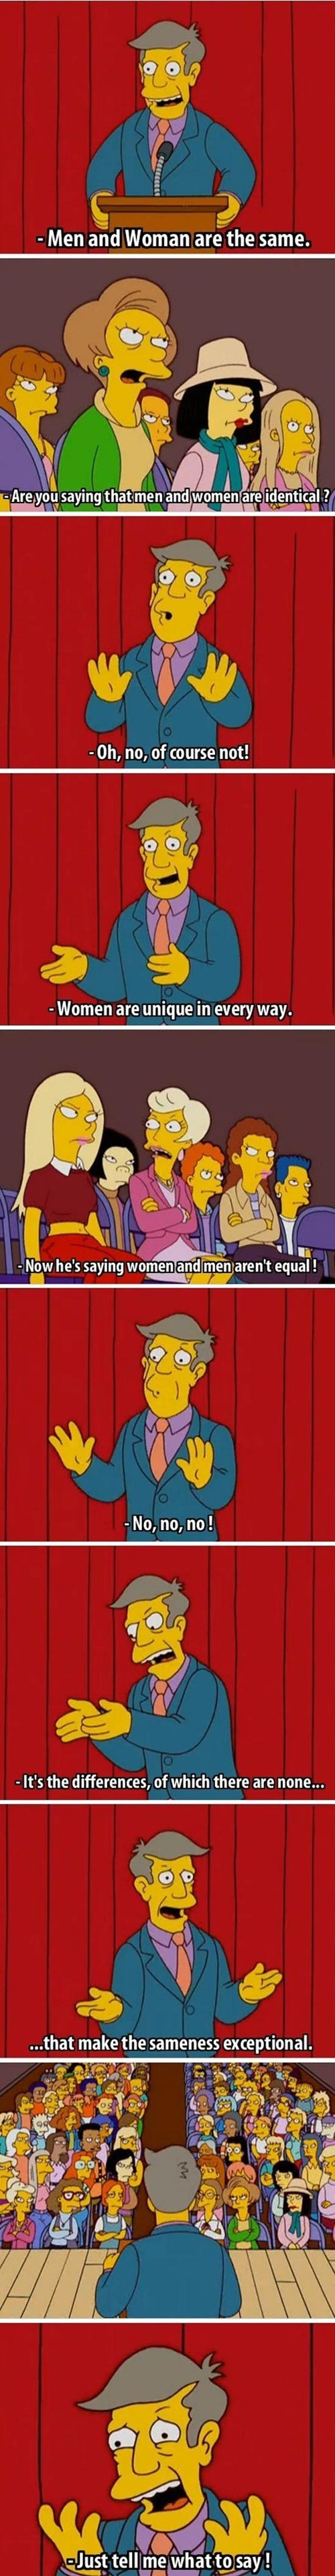 gender issues,feminism,the simpsons,battle of the sexes